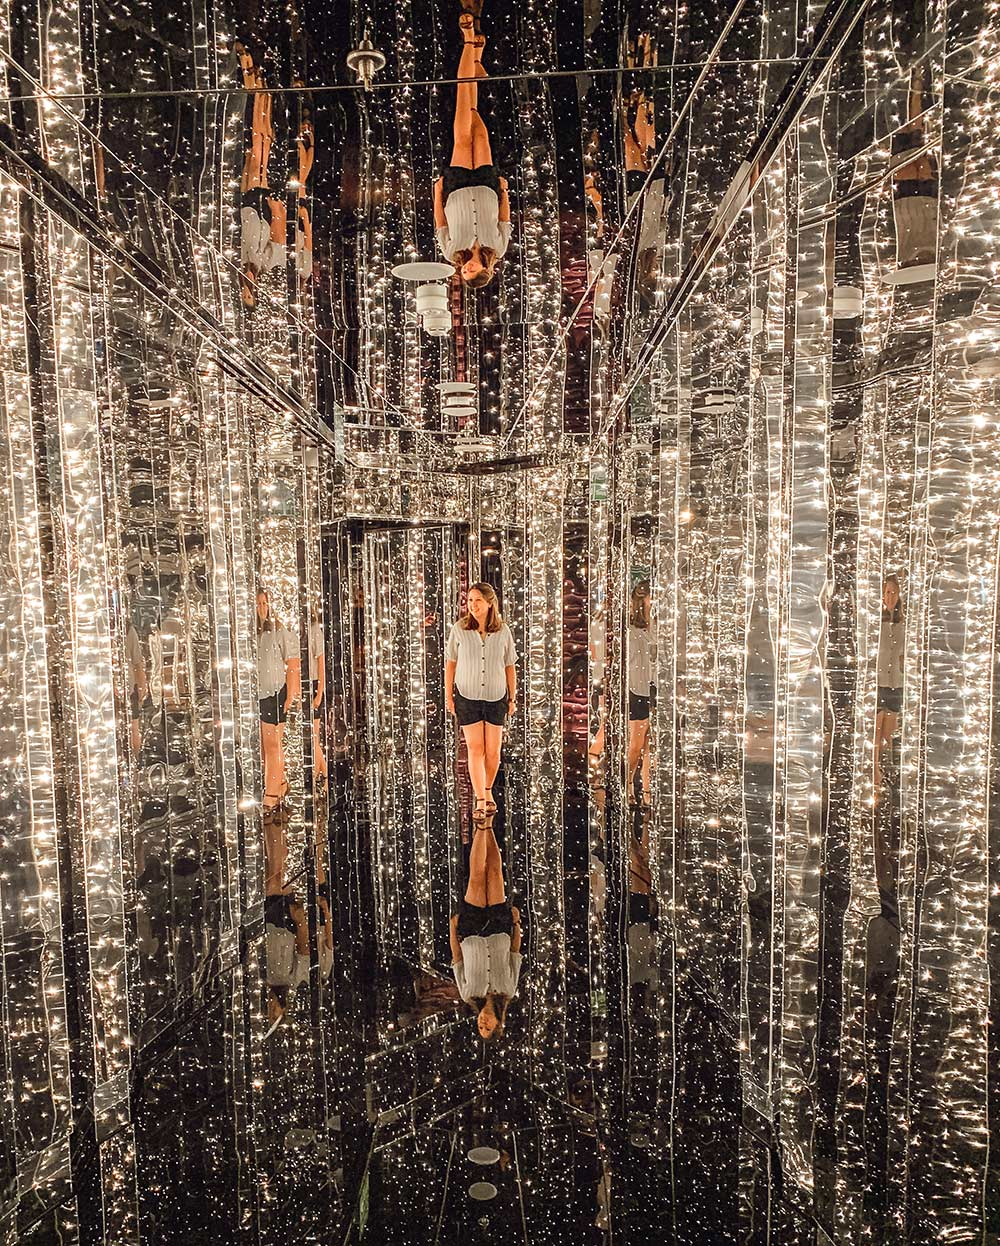 The Manor nightclub mirrored entrance onboard Virgin Voyages Scarlet Lady cruise ship